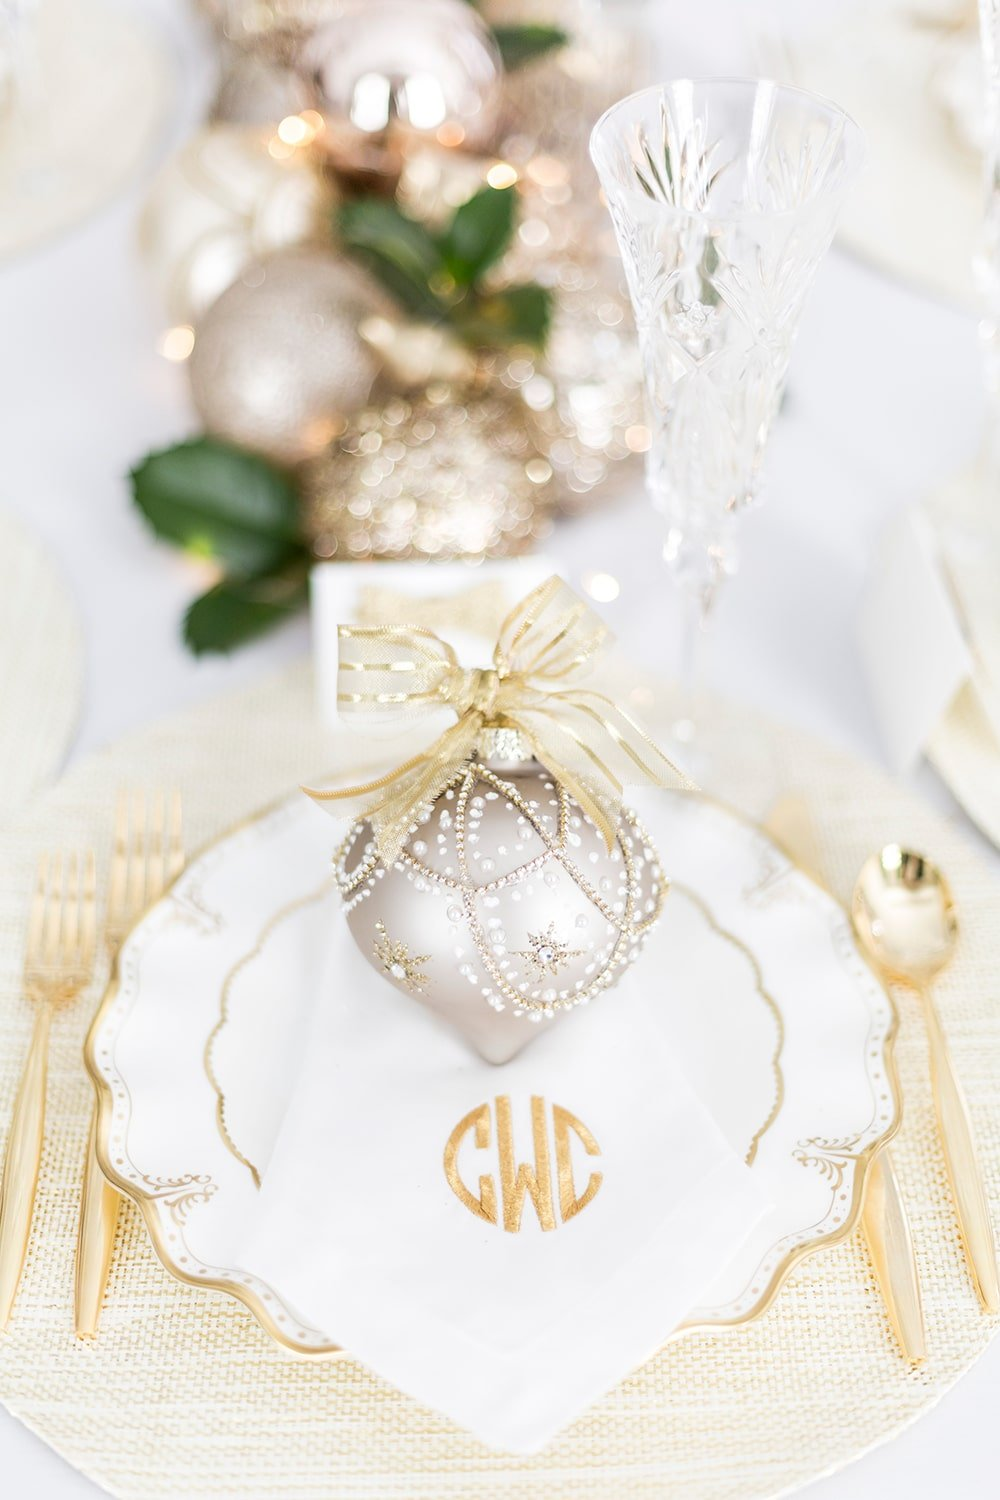 Glitzy Glam Holiday Tablescape